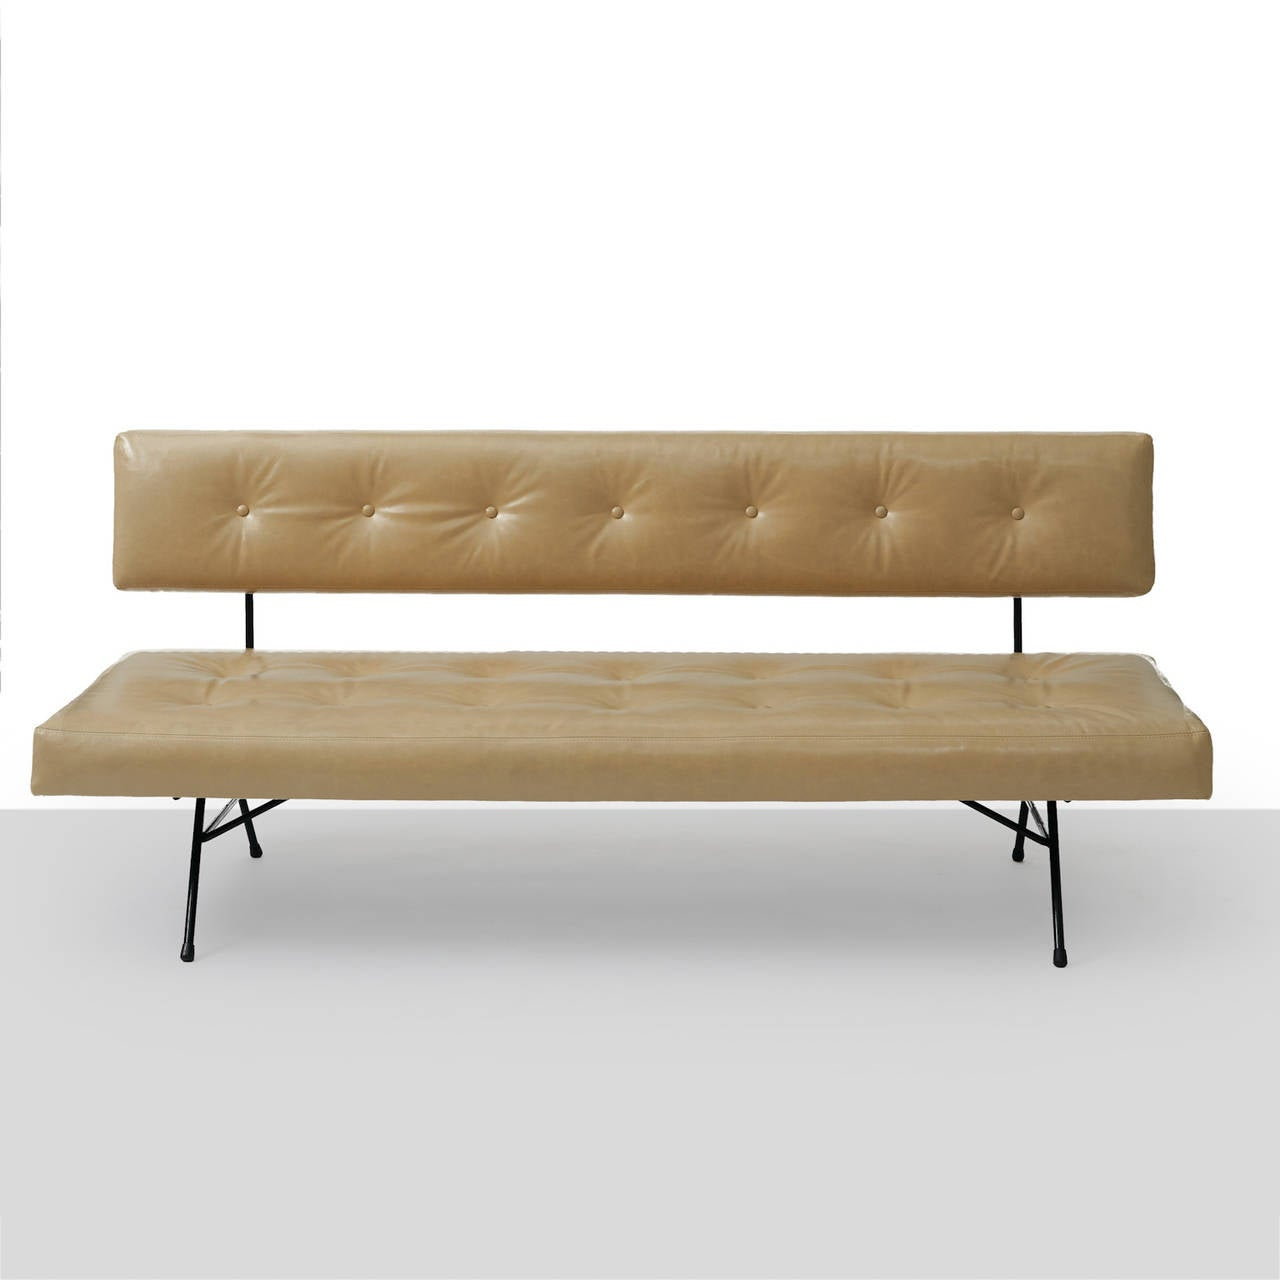 Norman Cherner, sofa.